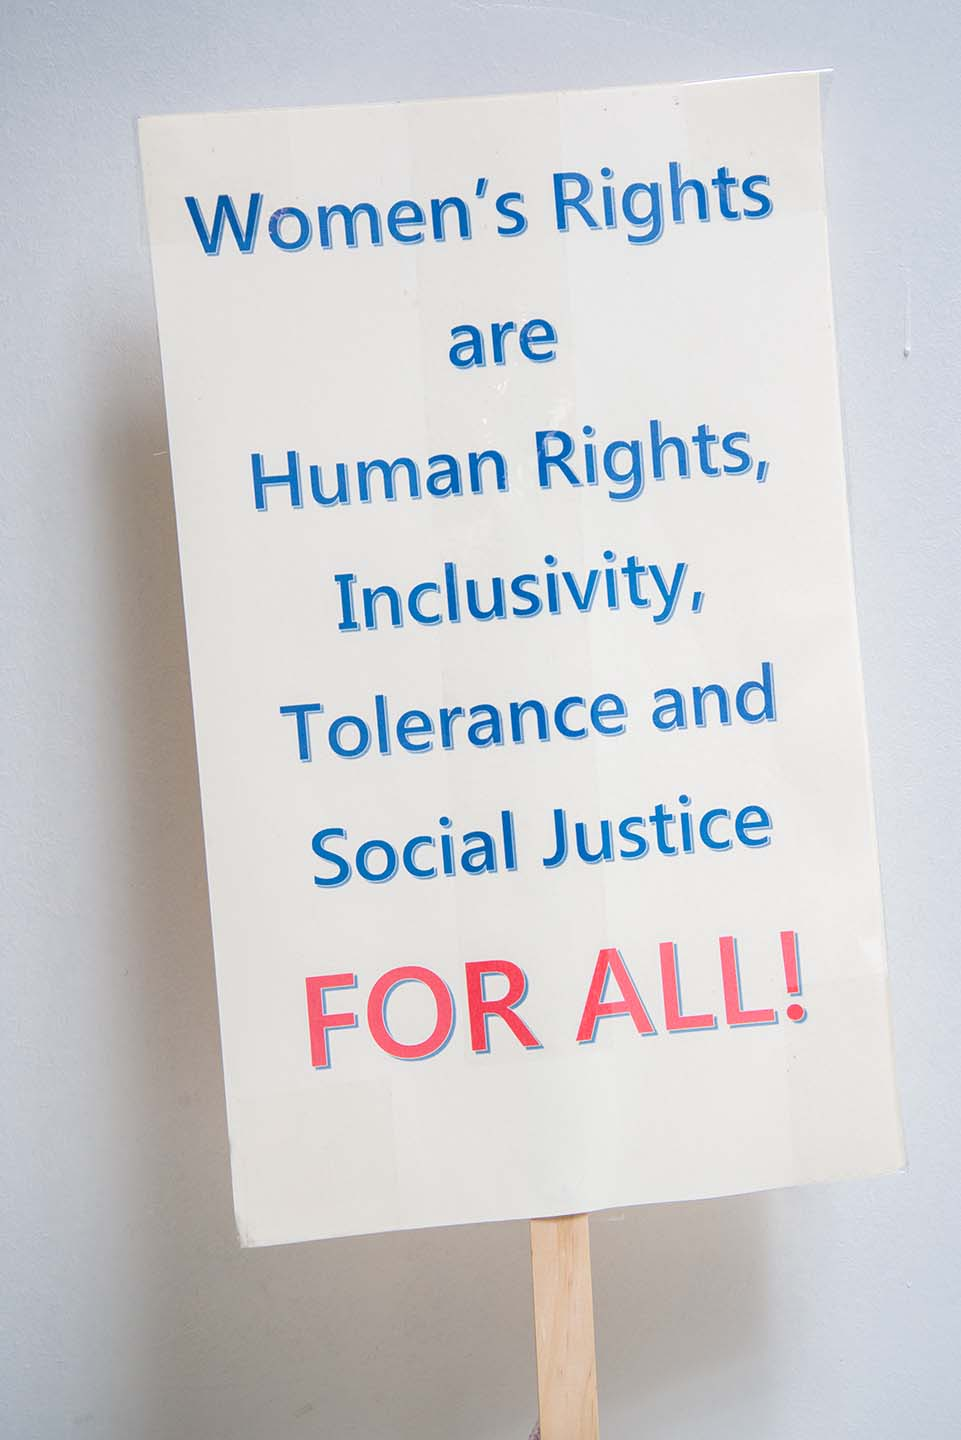 Women's Rights are Human Rights, Inclusivity, Tolerance and Social Justice FOR ALL!